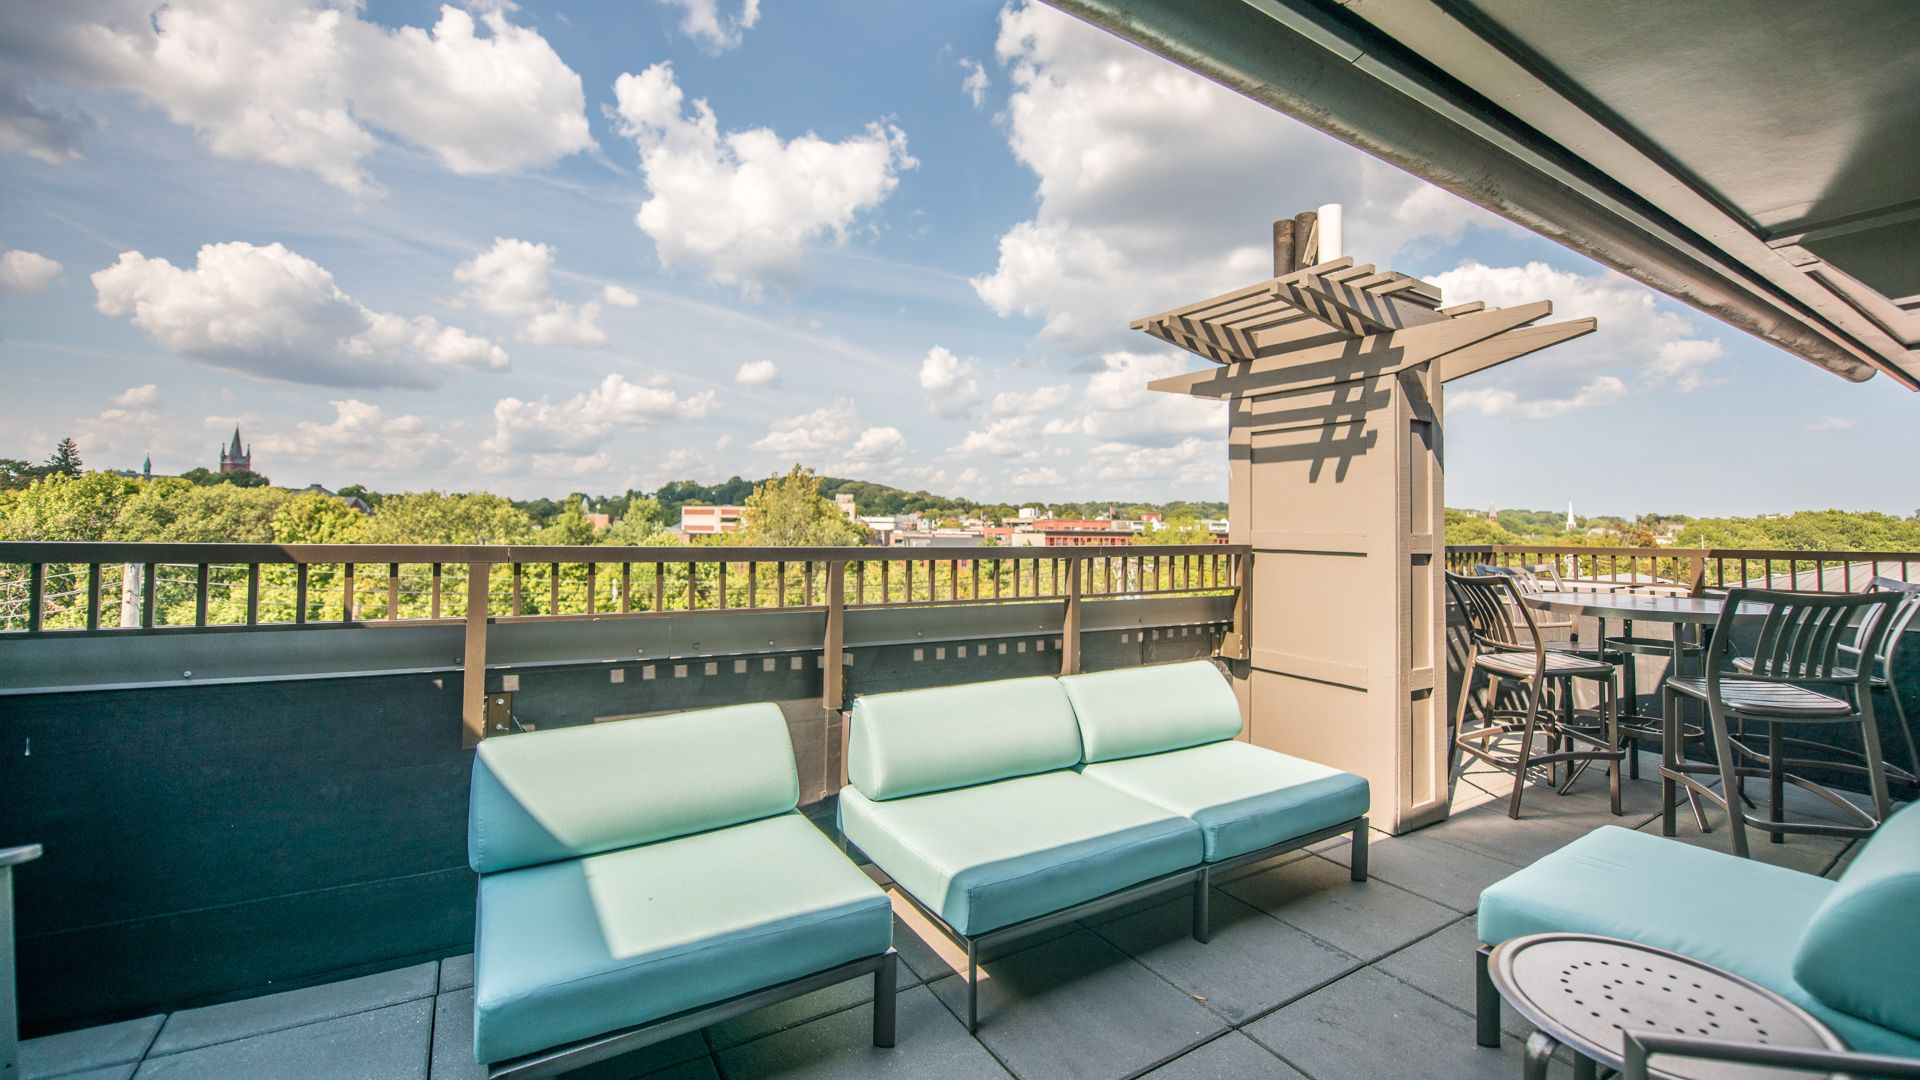 Watertown Square Apartments Rooftop Deck